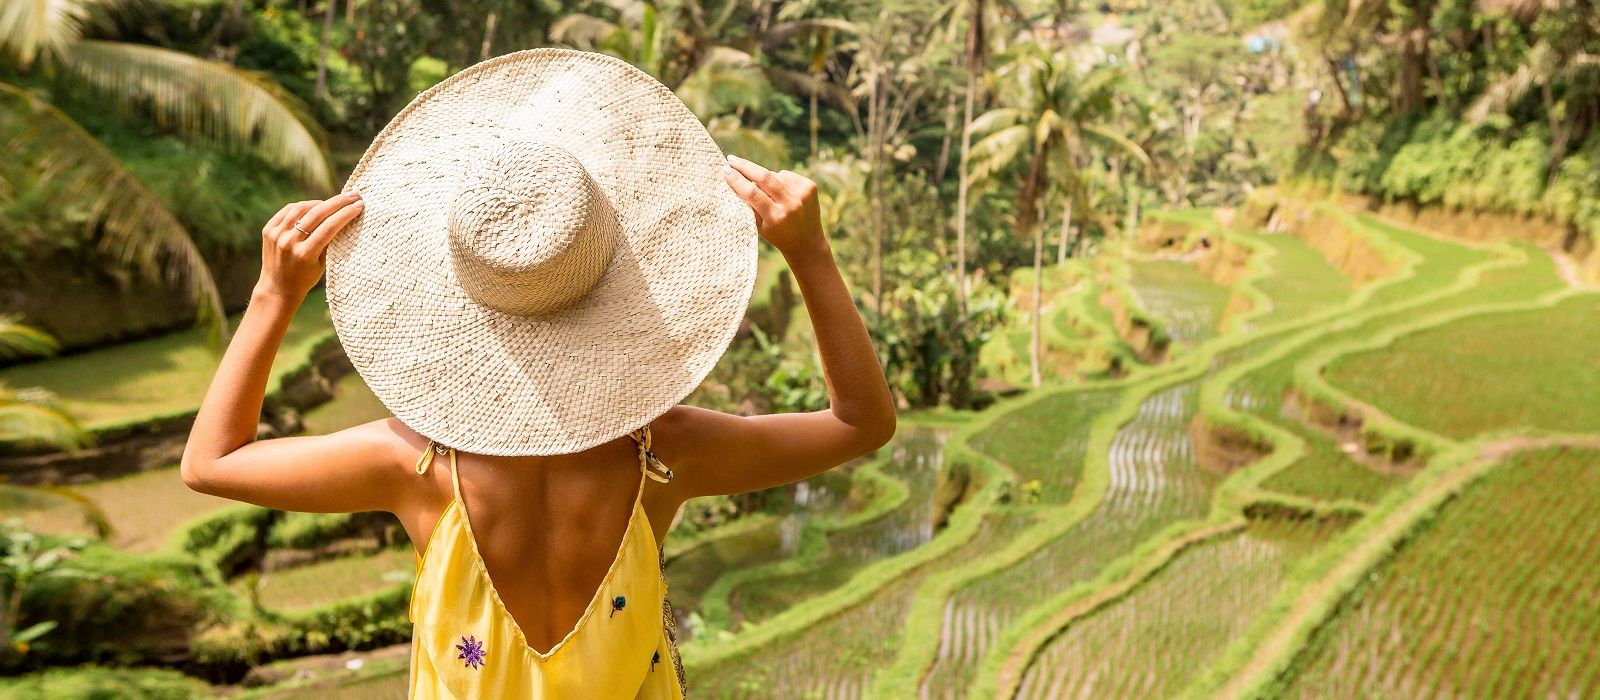 Is Indonesia safe? Beautiful young lady in shine through dress touch straw hat. Girl walk at typical Asian hillside with rice farming, mountain shape green cascade rice field terraces paddies. Ubud, Bali, Indonesia